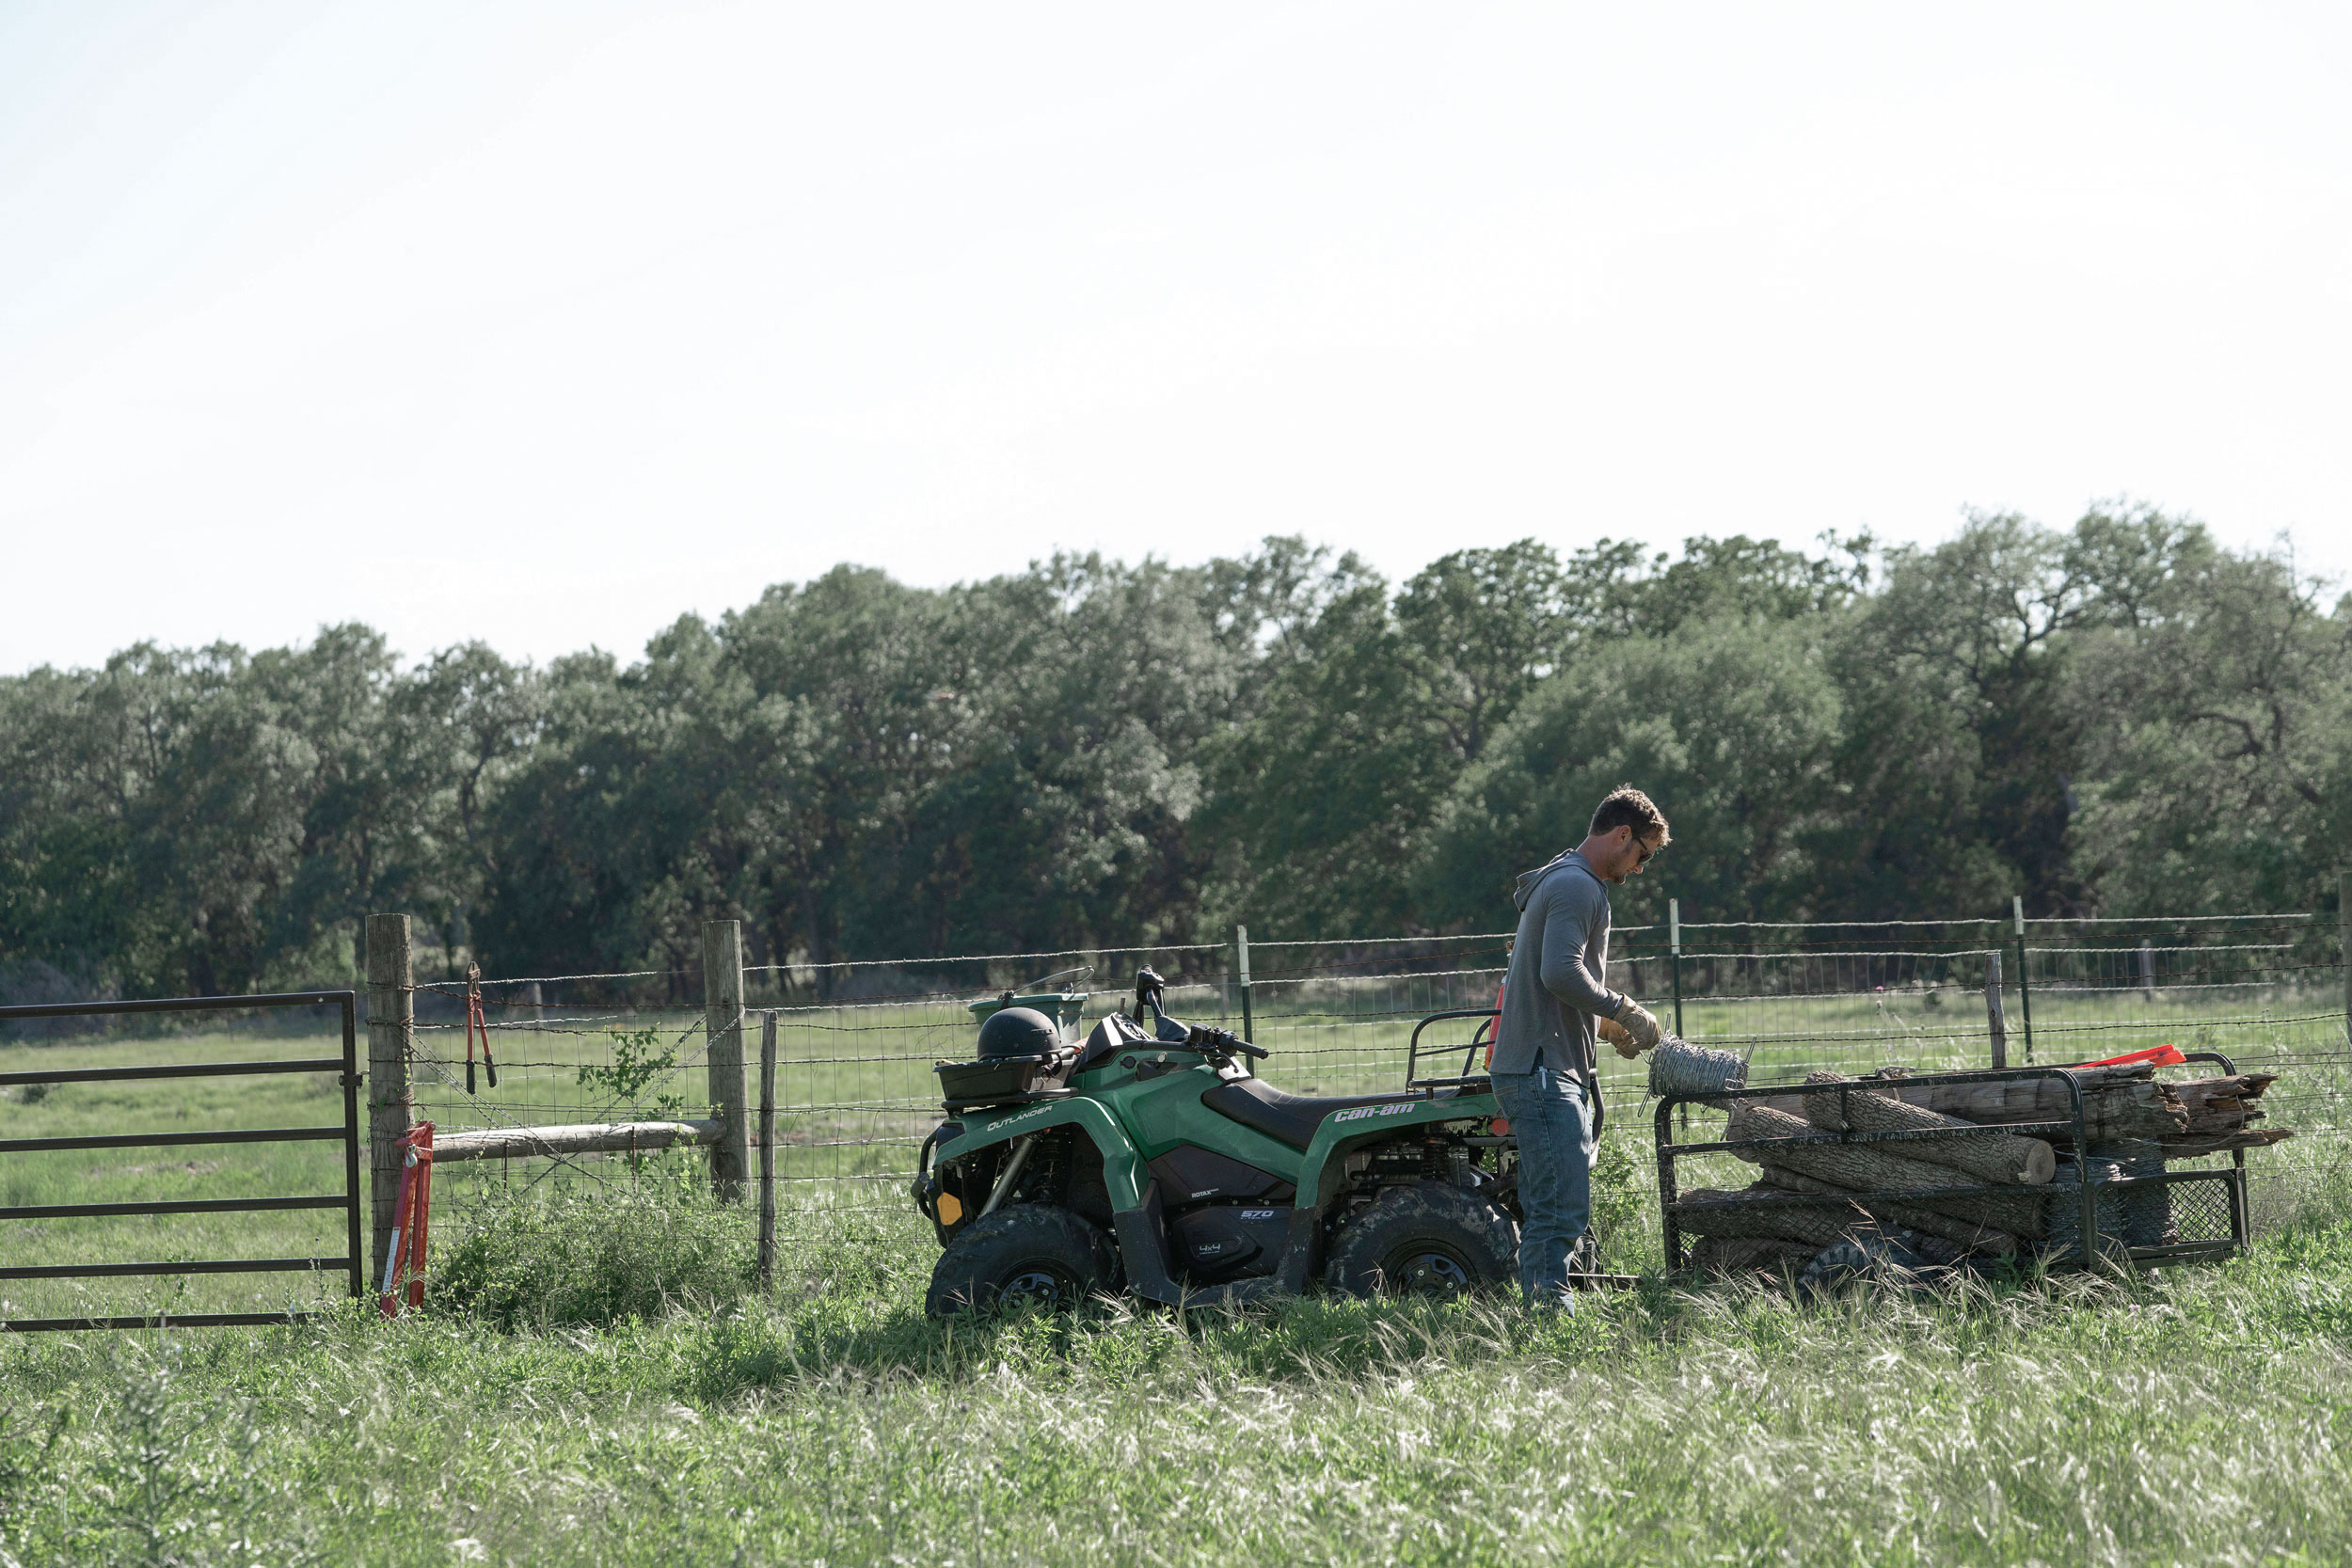 A Can-Am Outlander ATV and a man feeding cattle